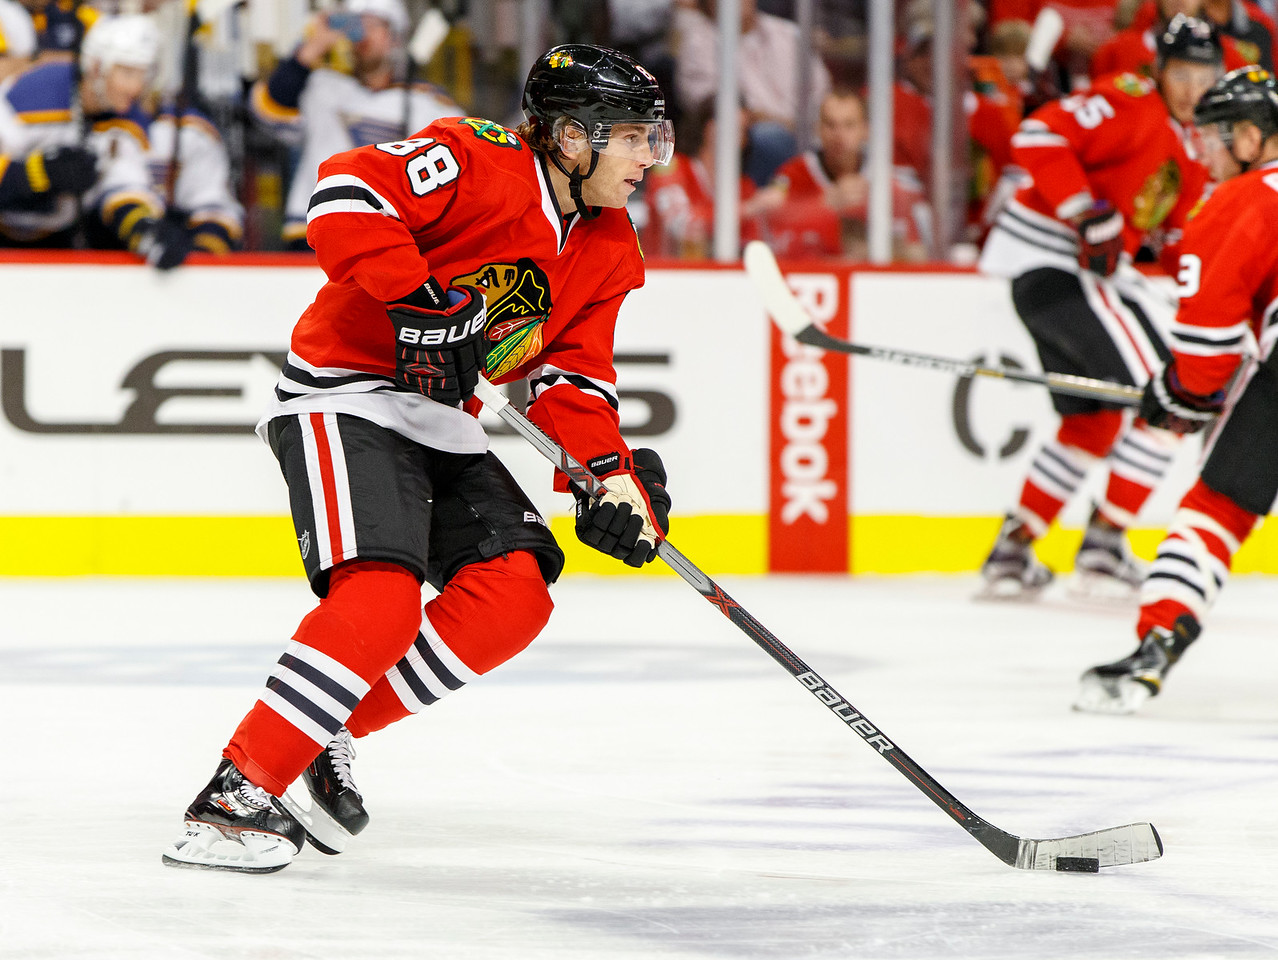 IMAGE: https://photos.smugmug.com/Sports/HockeyPhotos/Chicago-Blackhawks-vs-St-Louis/i-dLvJcpr/0/b092856f/X2/CC6Q4451_4598-X2.jpg